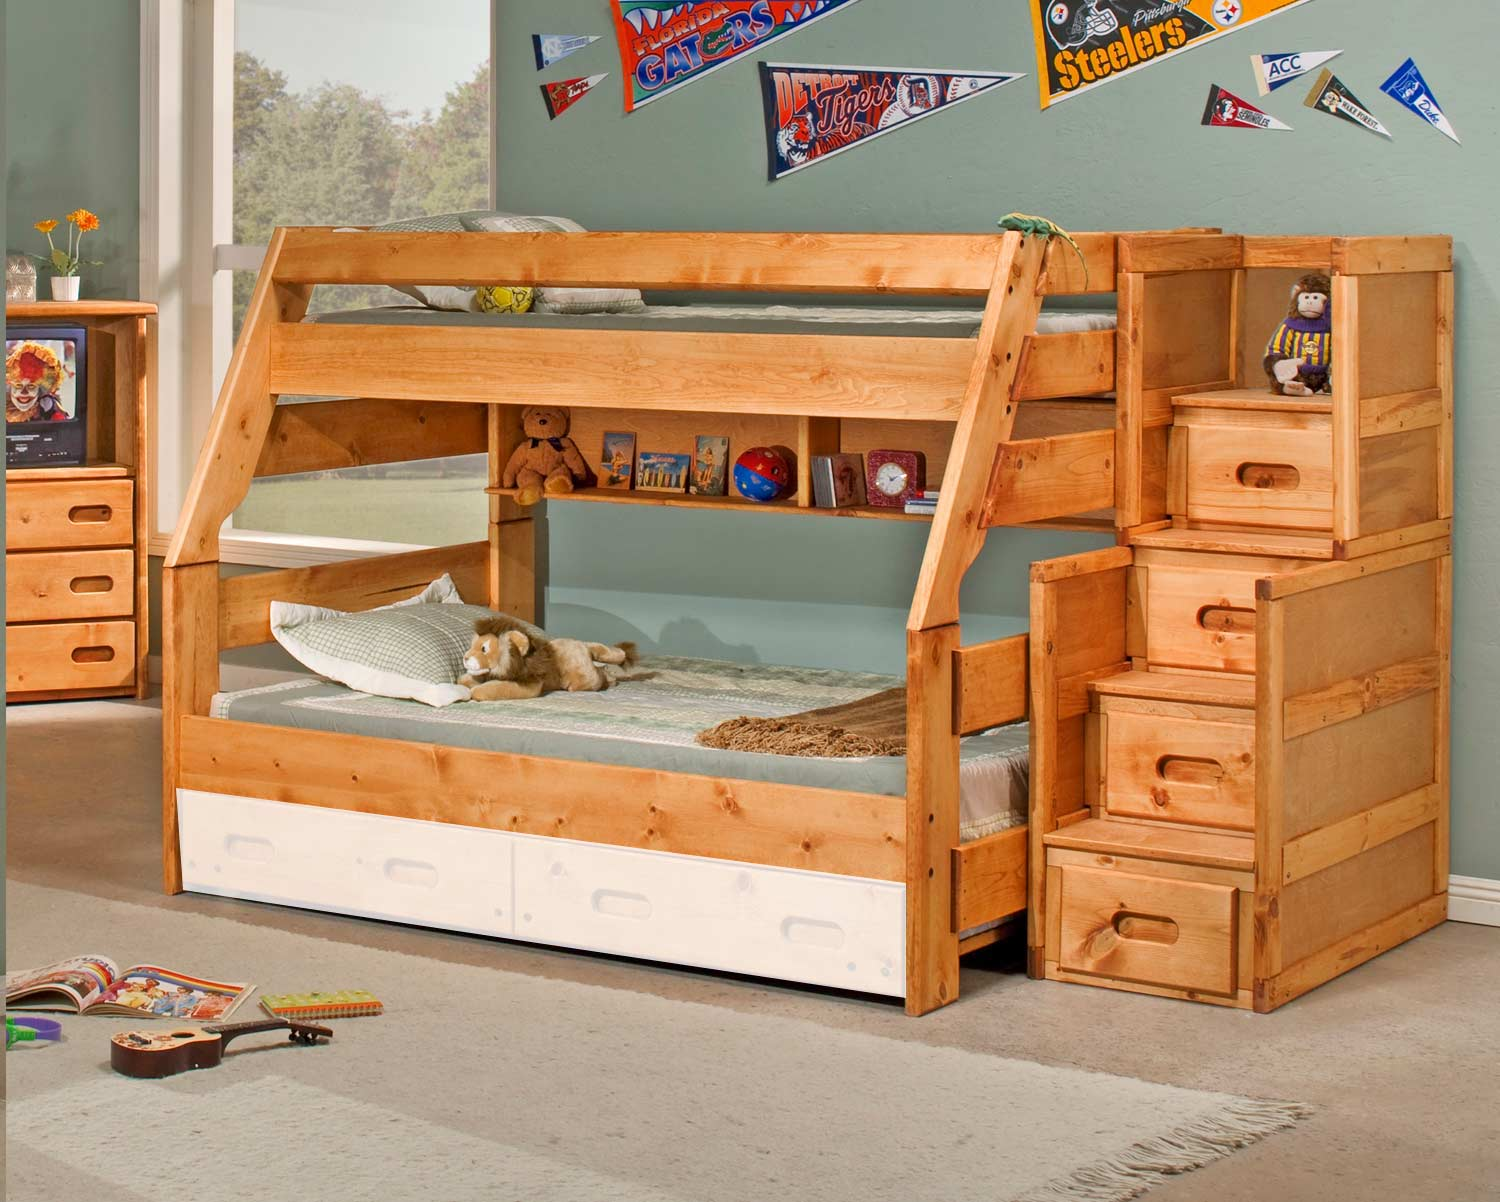 Chelsea Home 3544720-4754 Twin Over Full Bunk Bed with Stairway Chest - Cinnamon